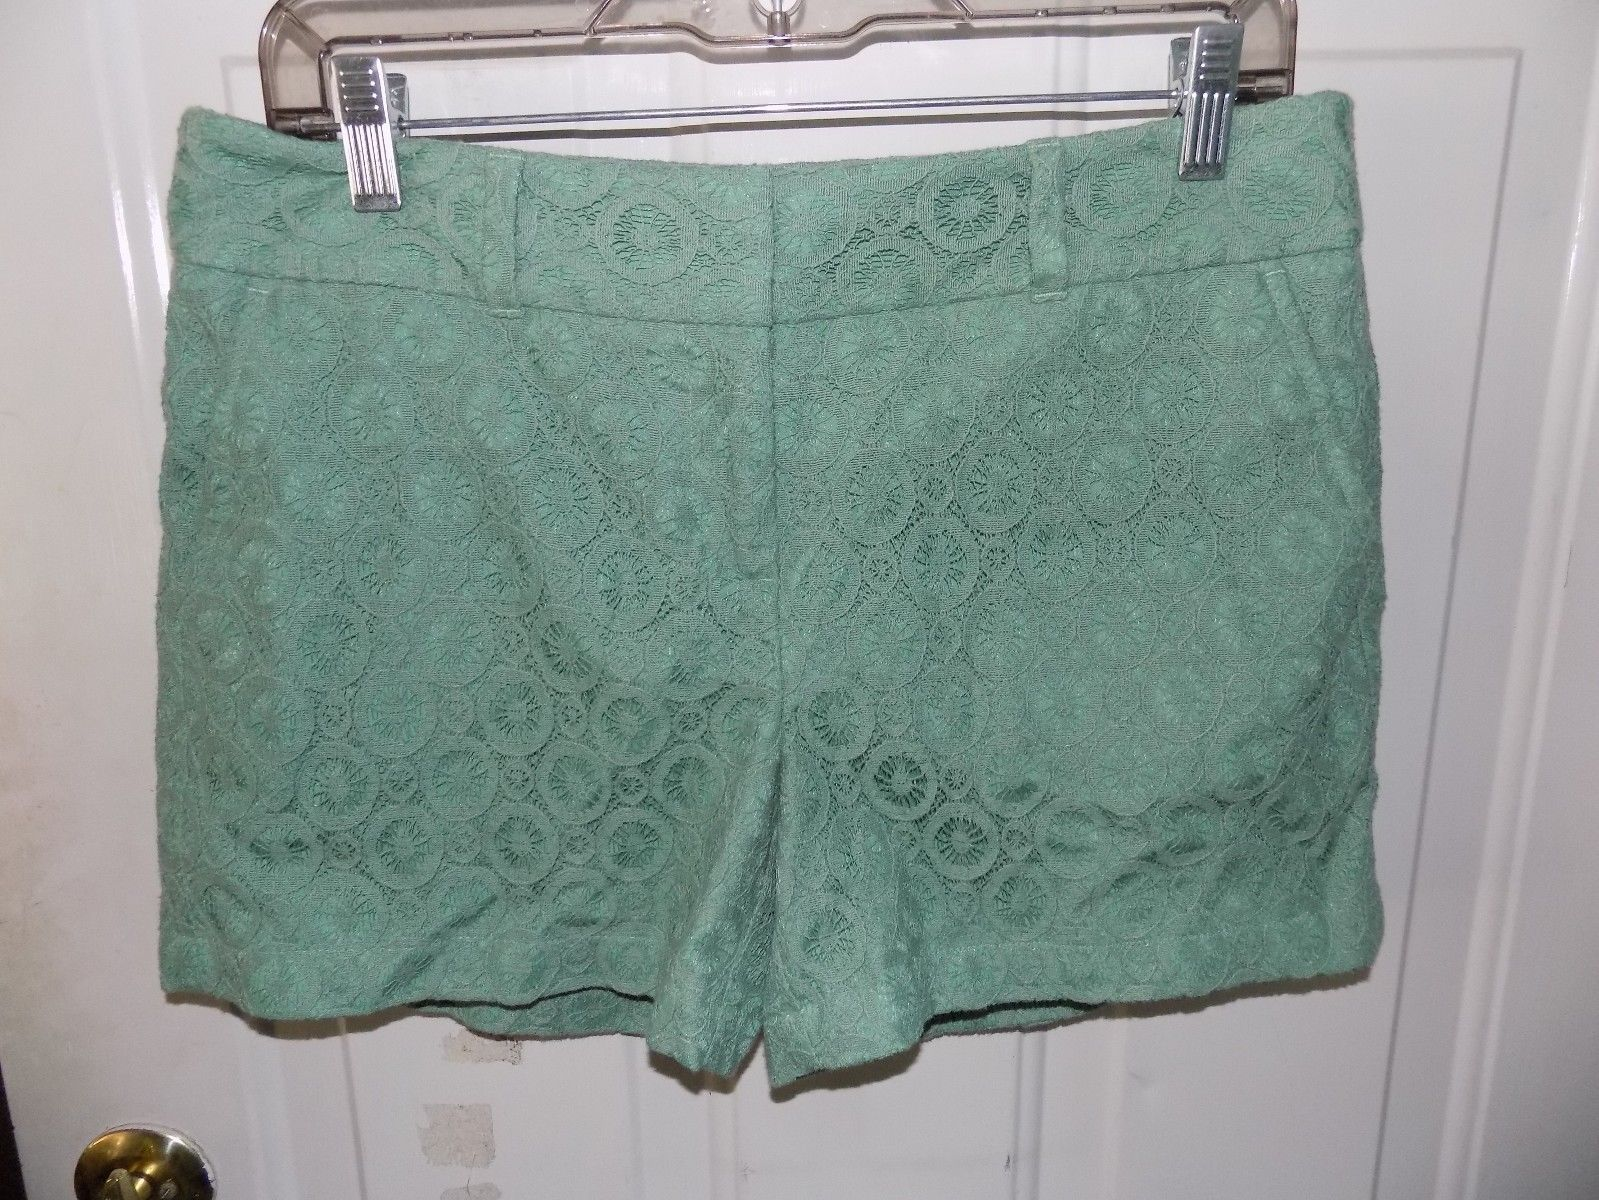 Primary image for 1861 Ann Taylor Loft Outlet Sage Lace Mid Rise Shorts Size 4 Women's NWOT